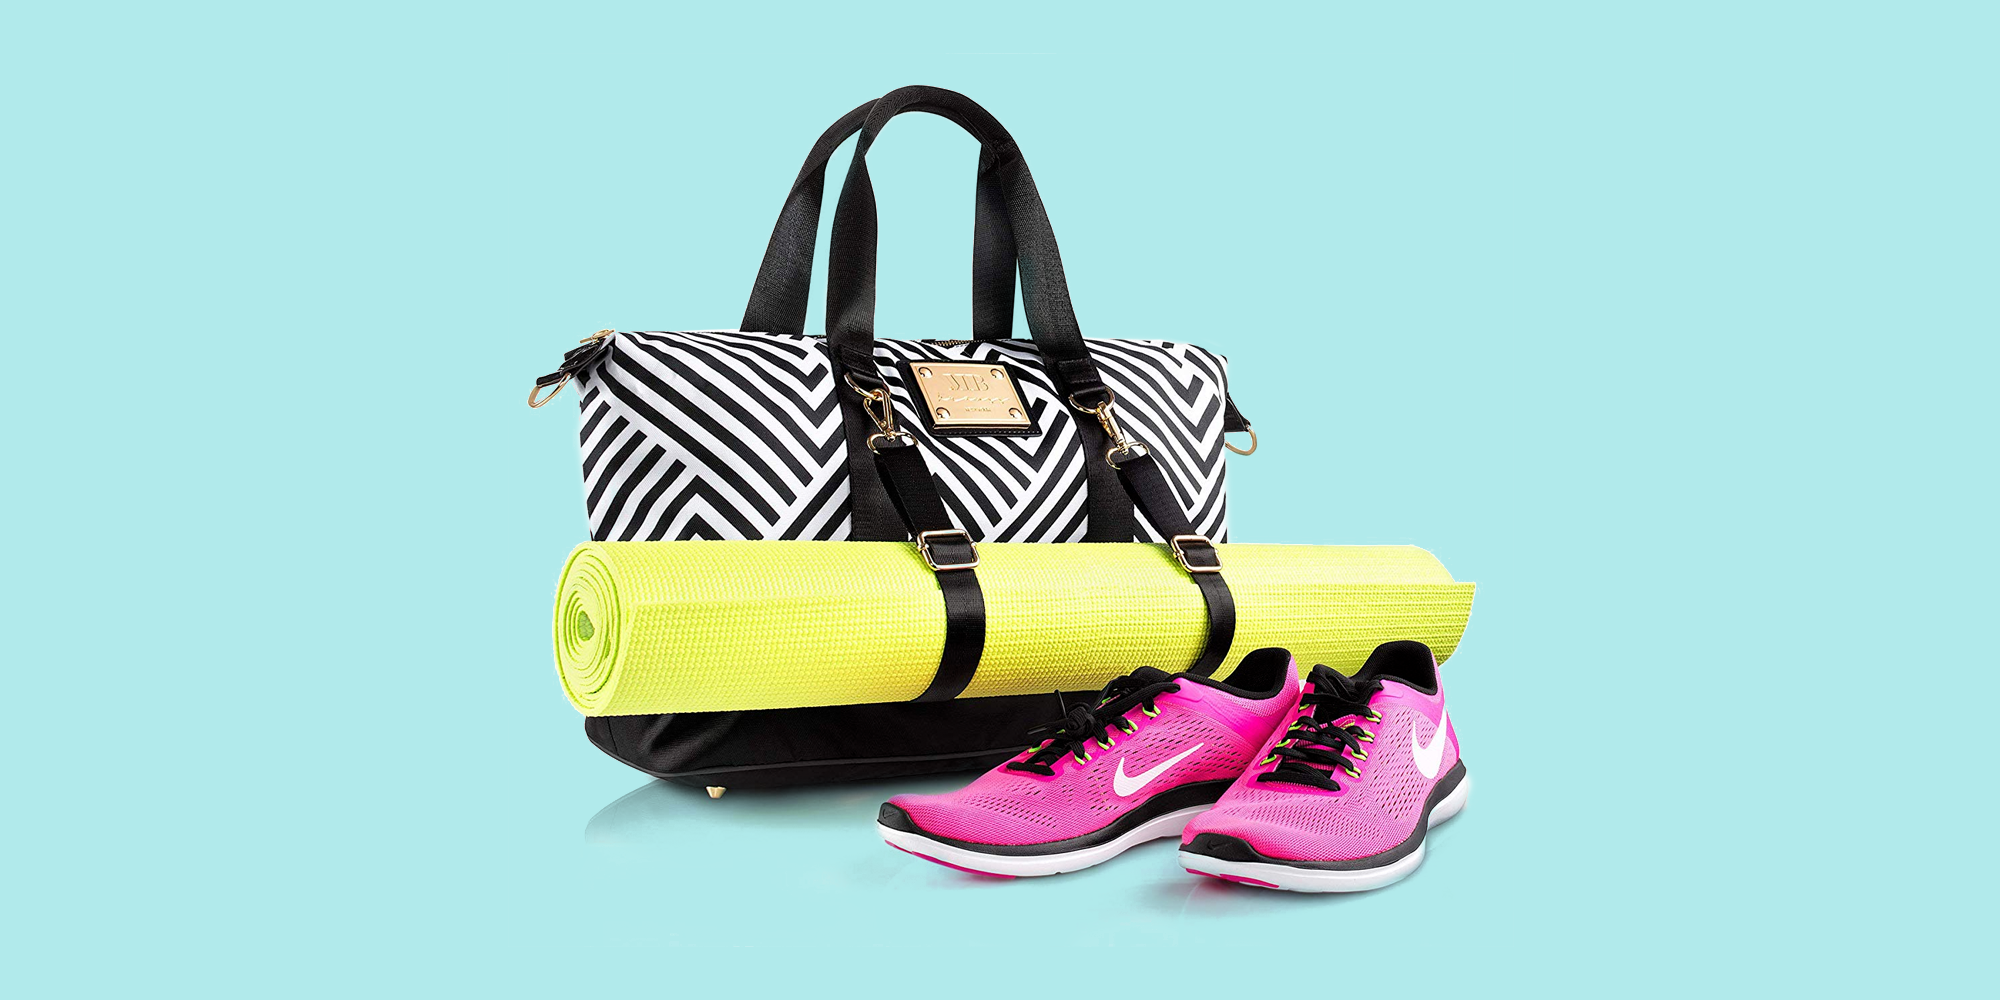 8 Best Yoga Mat Bags to Buy in 2019 - Top Rated and Reviewed Yoga Mat Bags c299b63760ea8